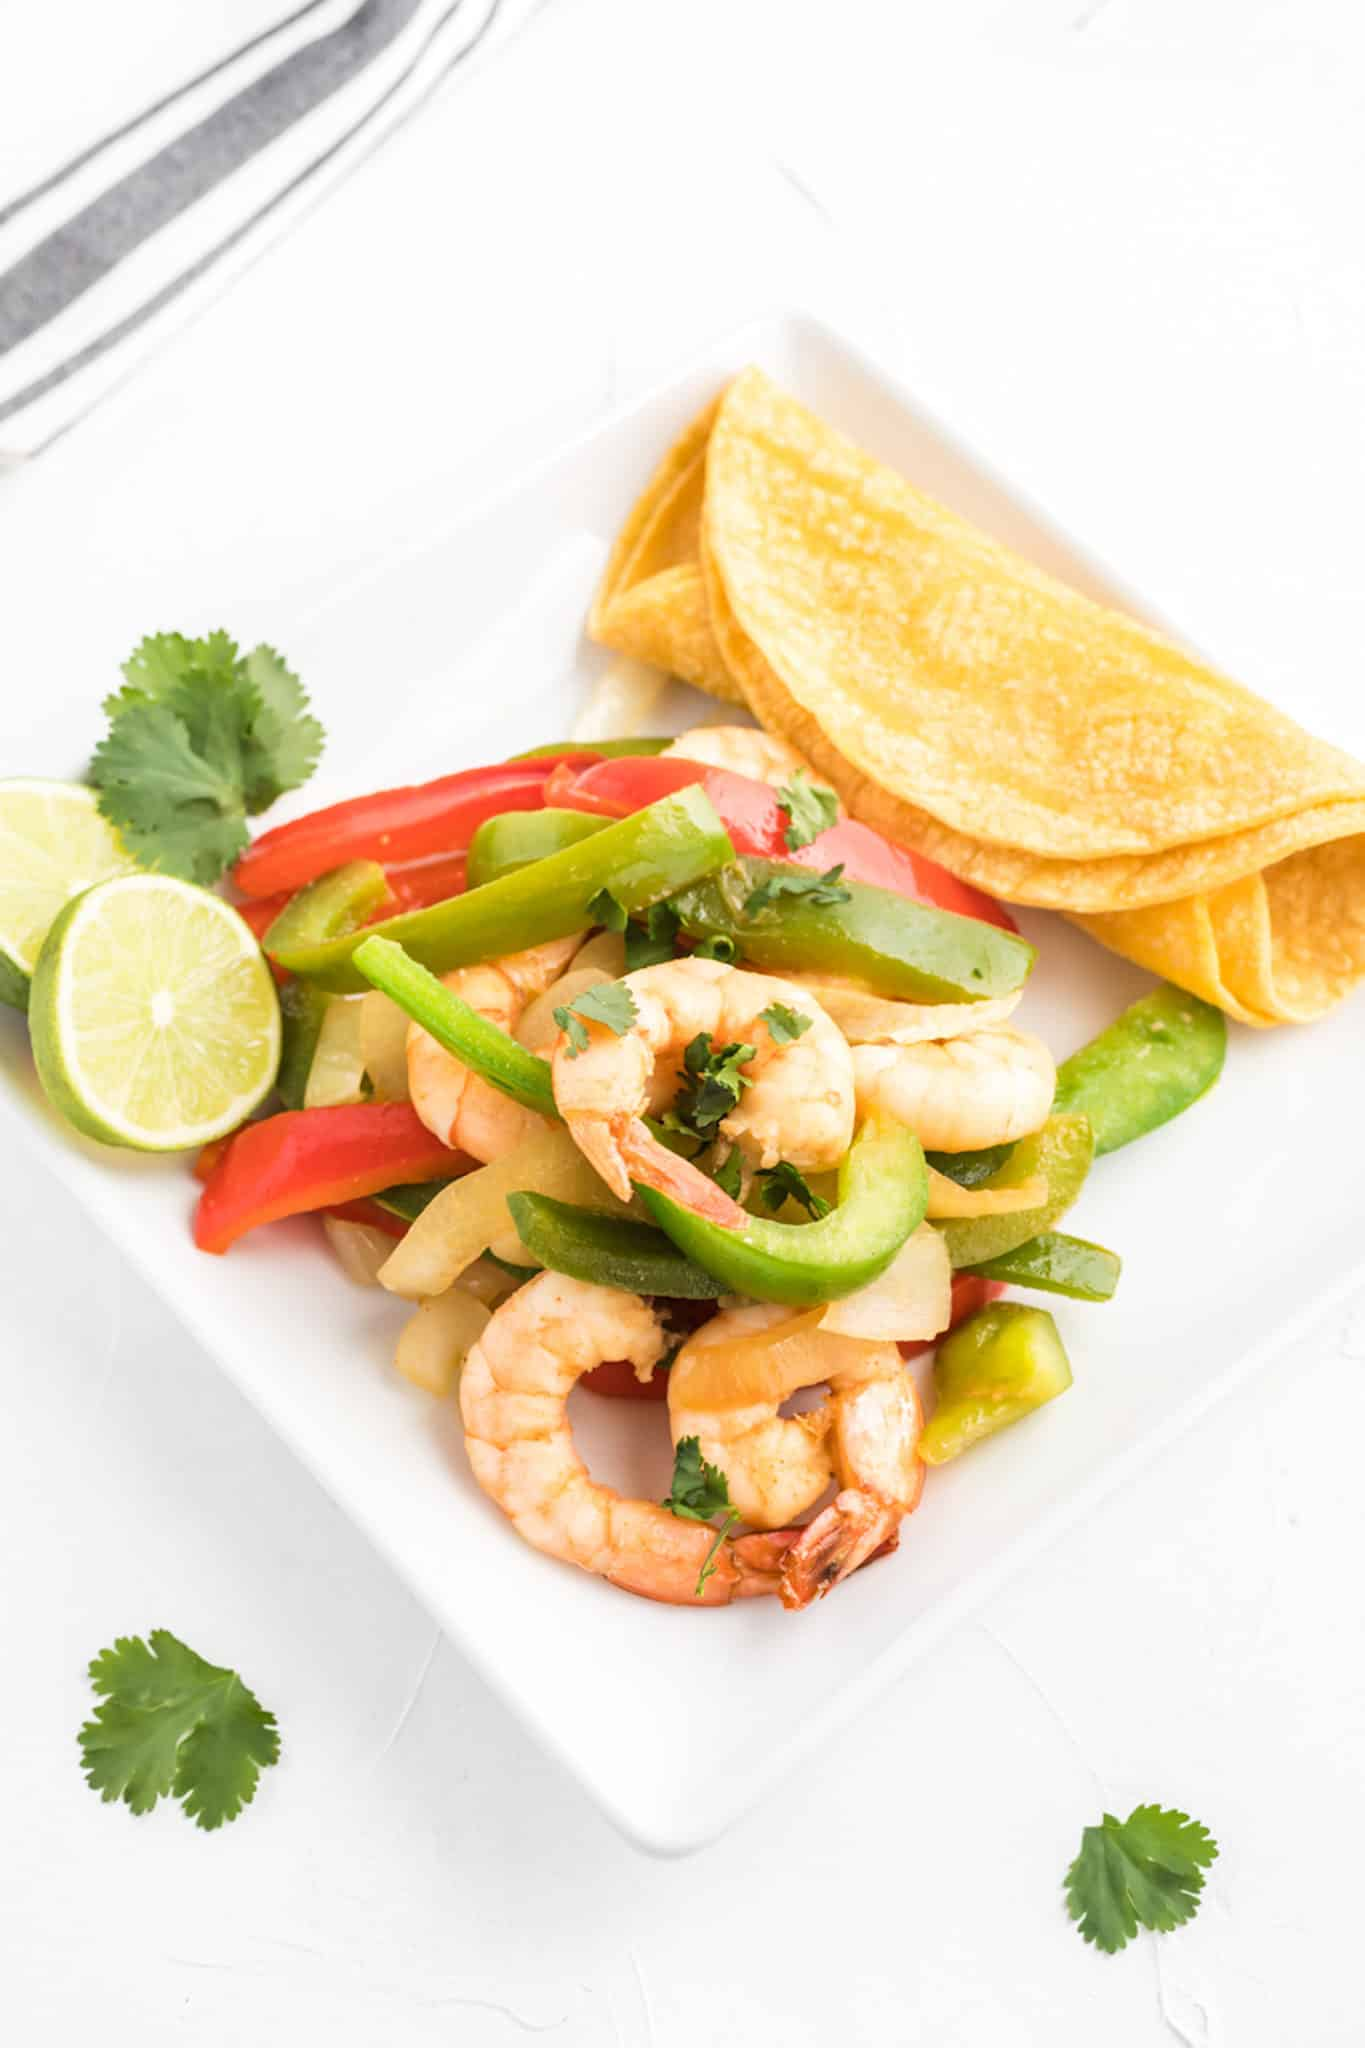 Sautéed shrimp and bell peppers with tortillas